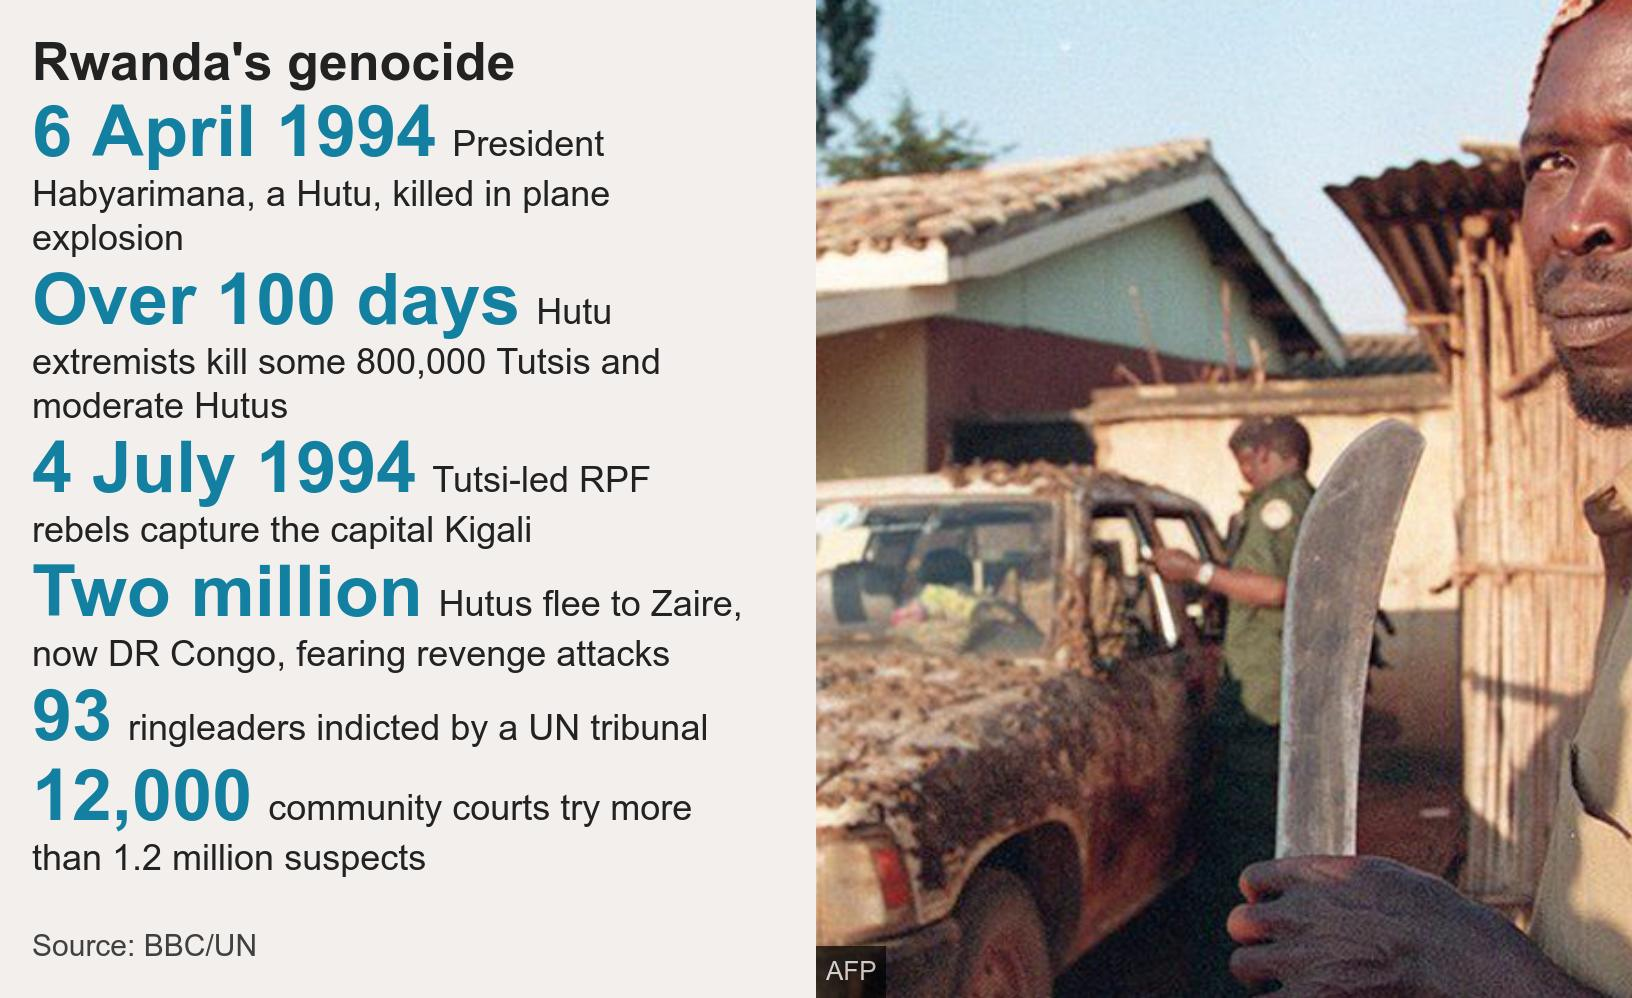 Rwanda's genocide. [ 6 April 1994 President Habyarimana, a Hutu, killed in plane explosion ],[ Over 100 days Hutu extremists kill some 800,000 Tutsis and moderate Hutus ],[ 4 July 1994 Tutsi-led RPF rebels capture the capital Kigali ],[ Two million Hutus flee to Zaire, now DR Congo, fearing revenge attacks ],[ 93 ringleaders indicted by a UN tribunal ],[ 12,000 community courts try more than 1.2 million suspects ], Source: Source: BBC/UN, Image: Interahamwe militiamen pictured in 1994